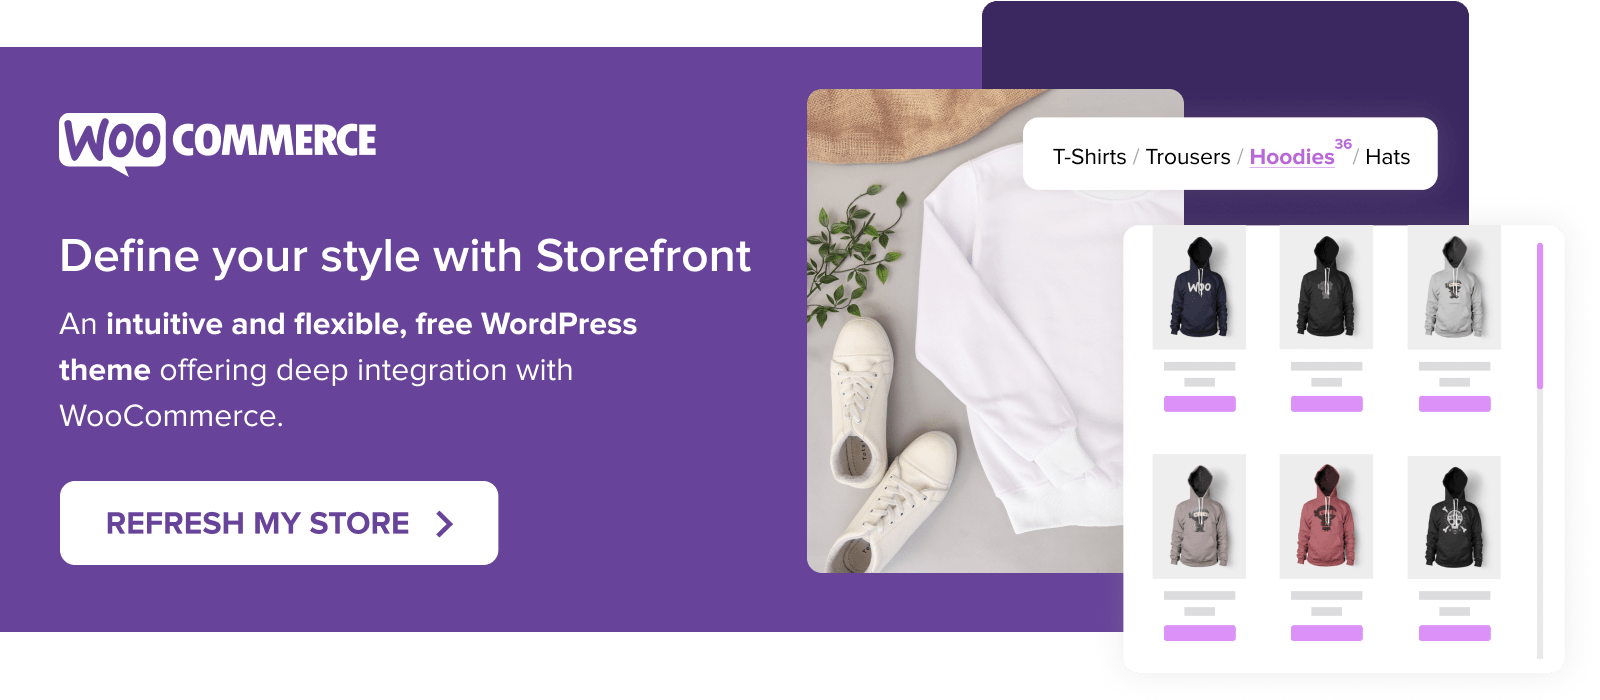 Refresh your store with Storefront - a theme built by WooCommerce for WooCommerce